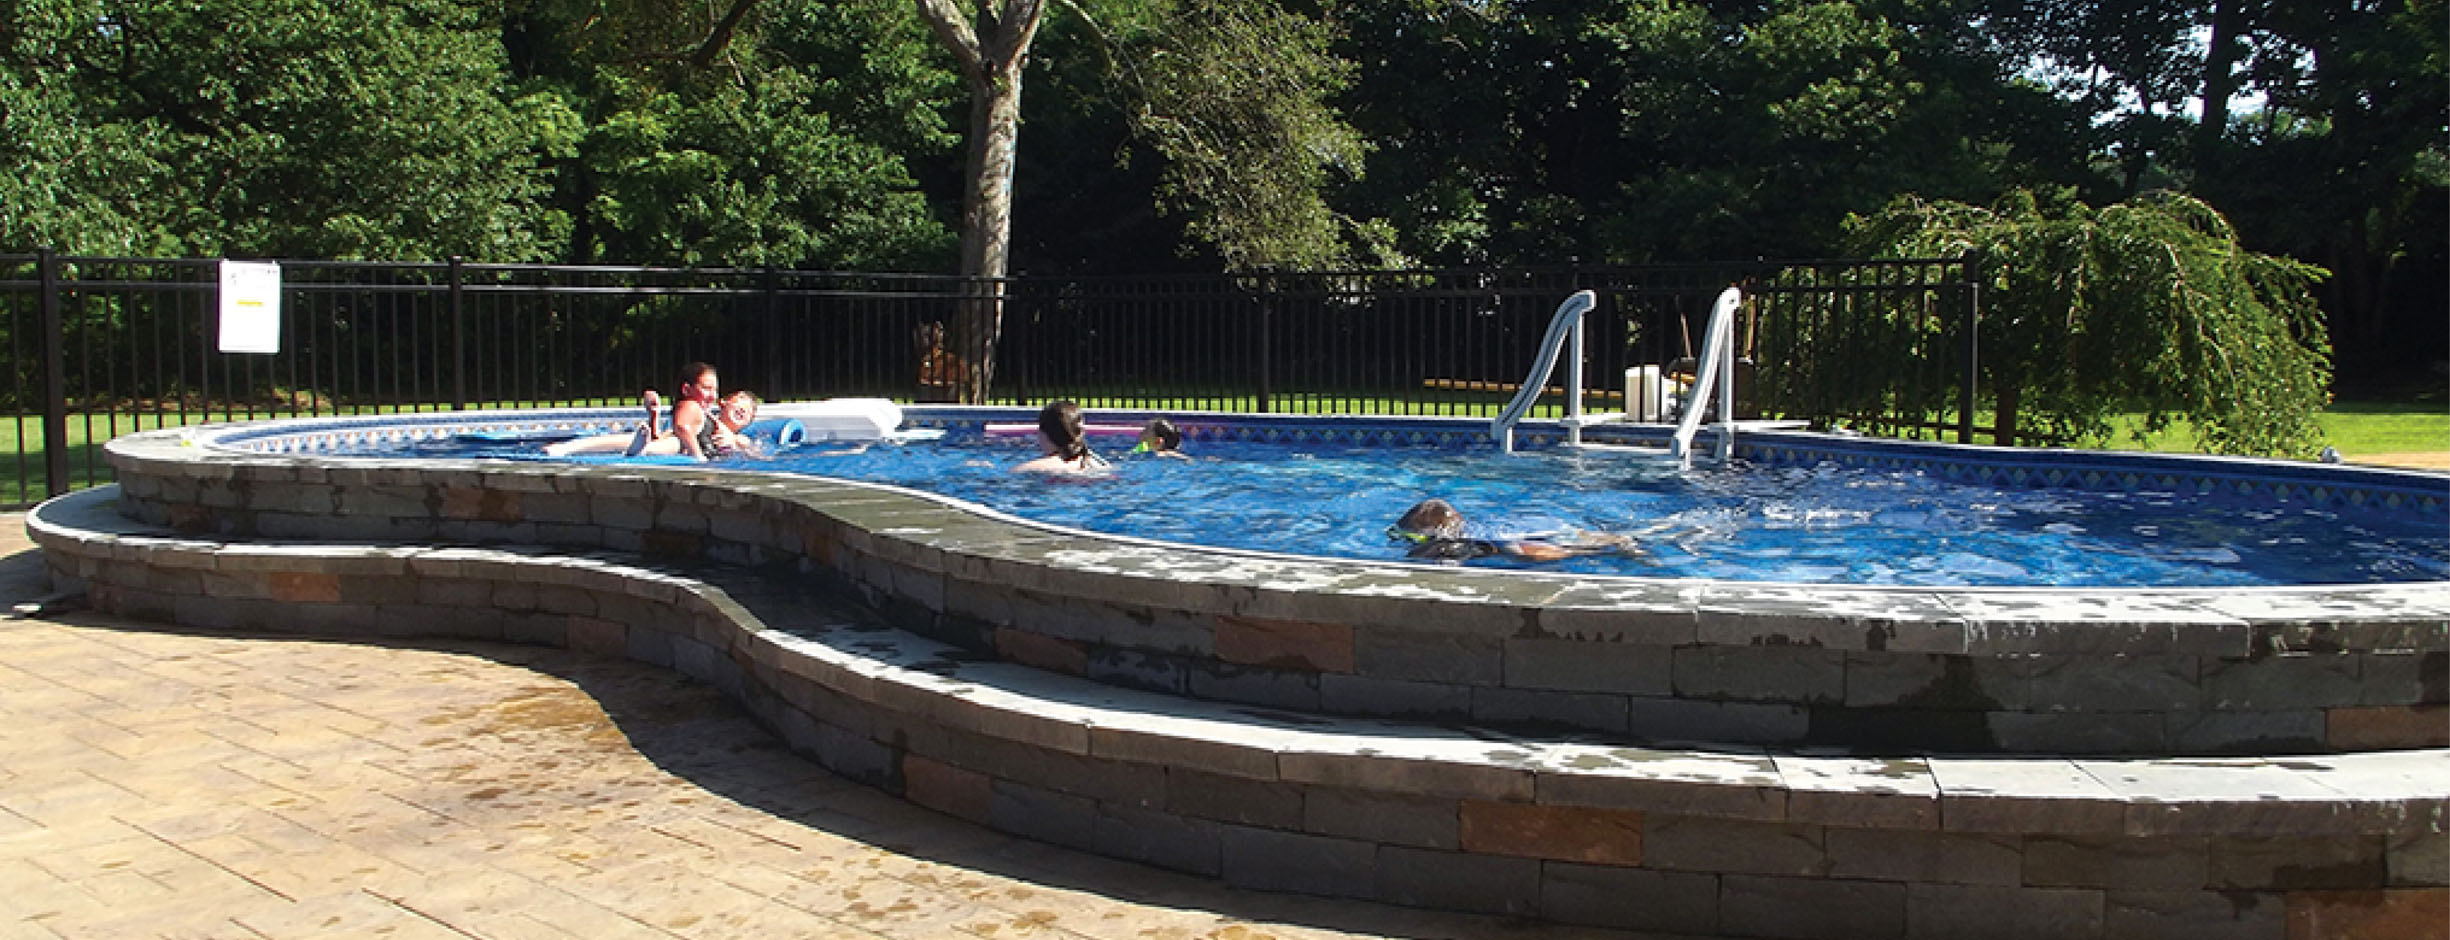 Above ground pools cryer pools spas inc - How to build an above ground swimming pool ...